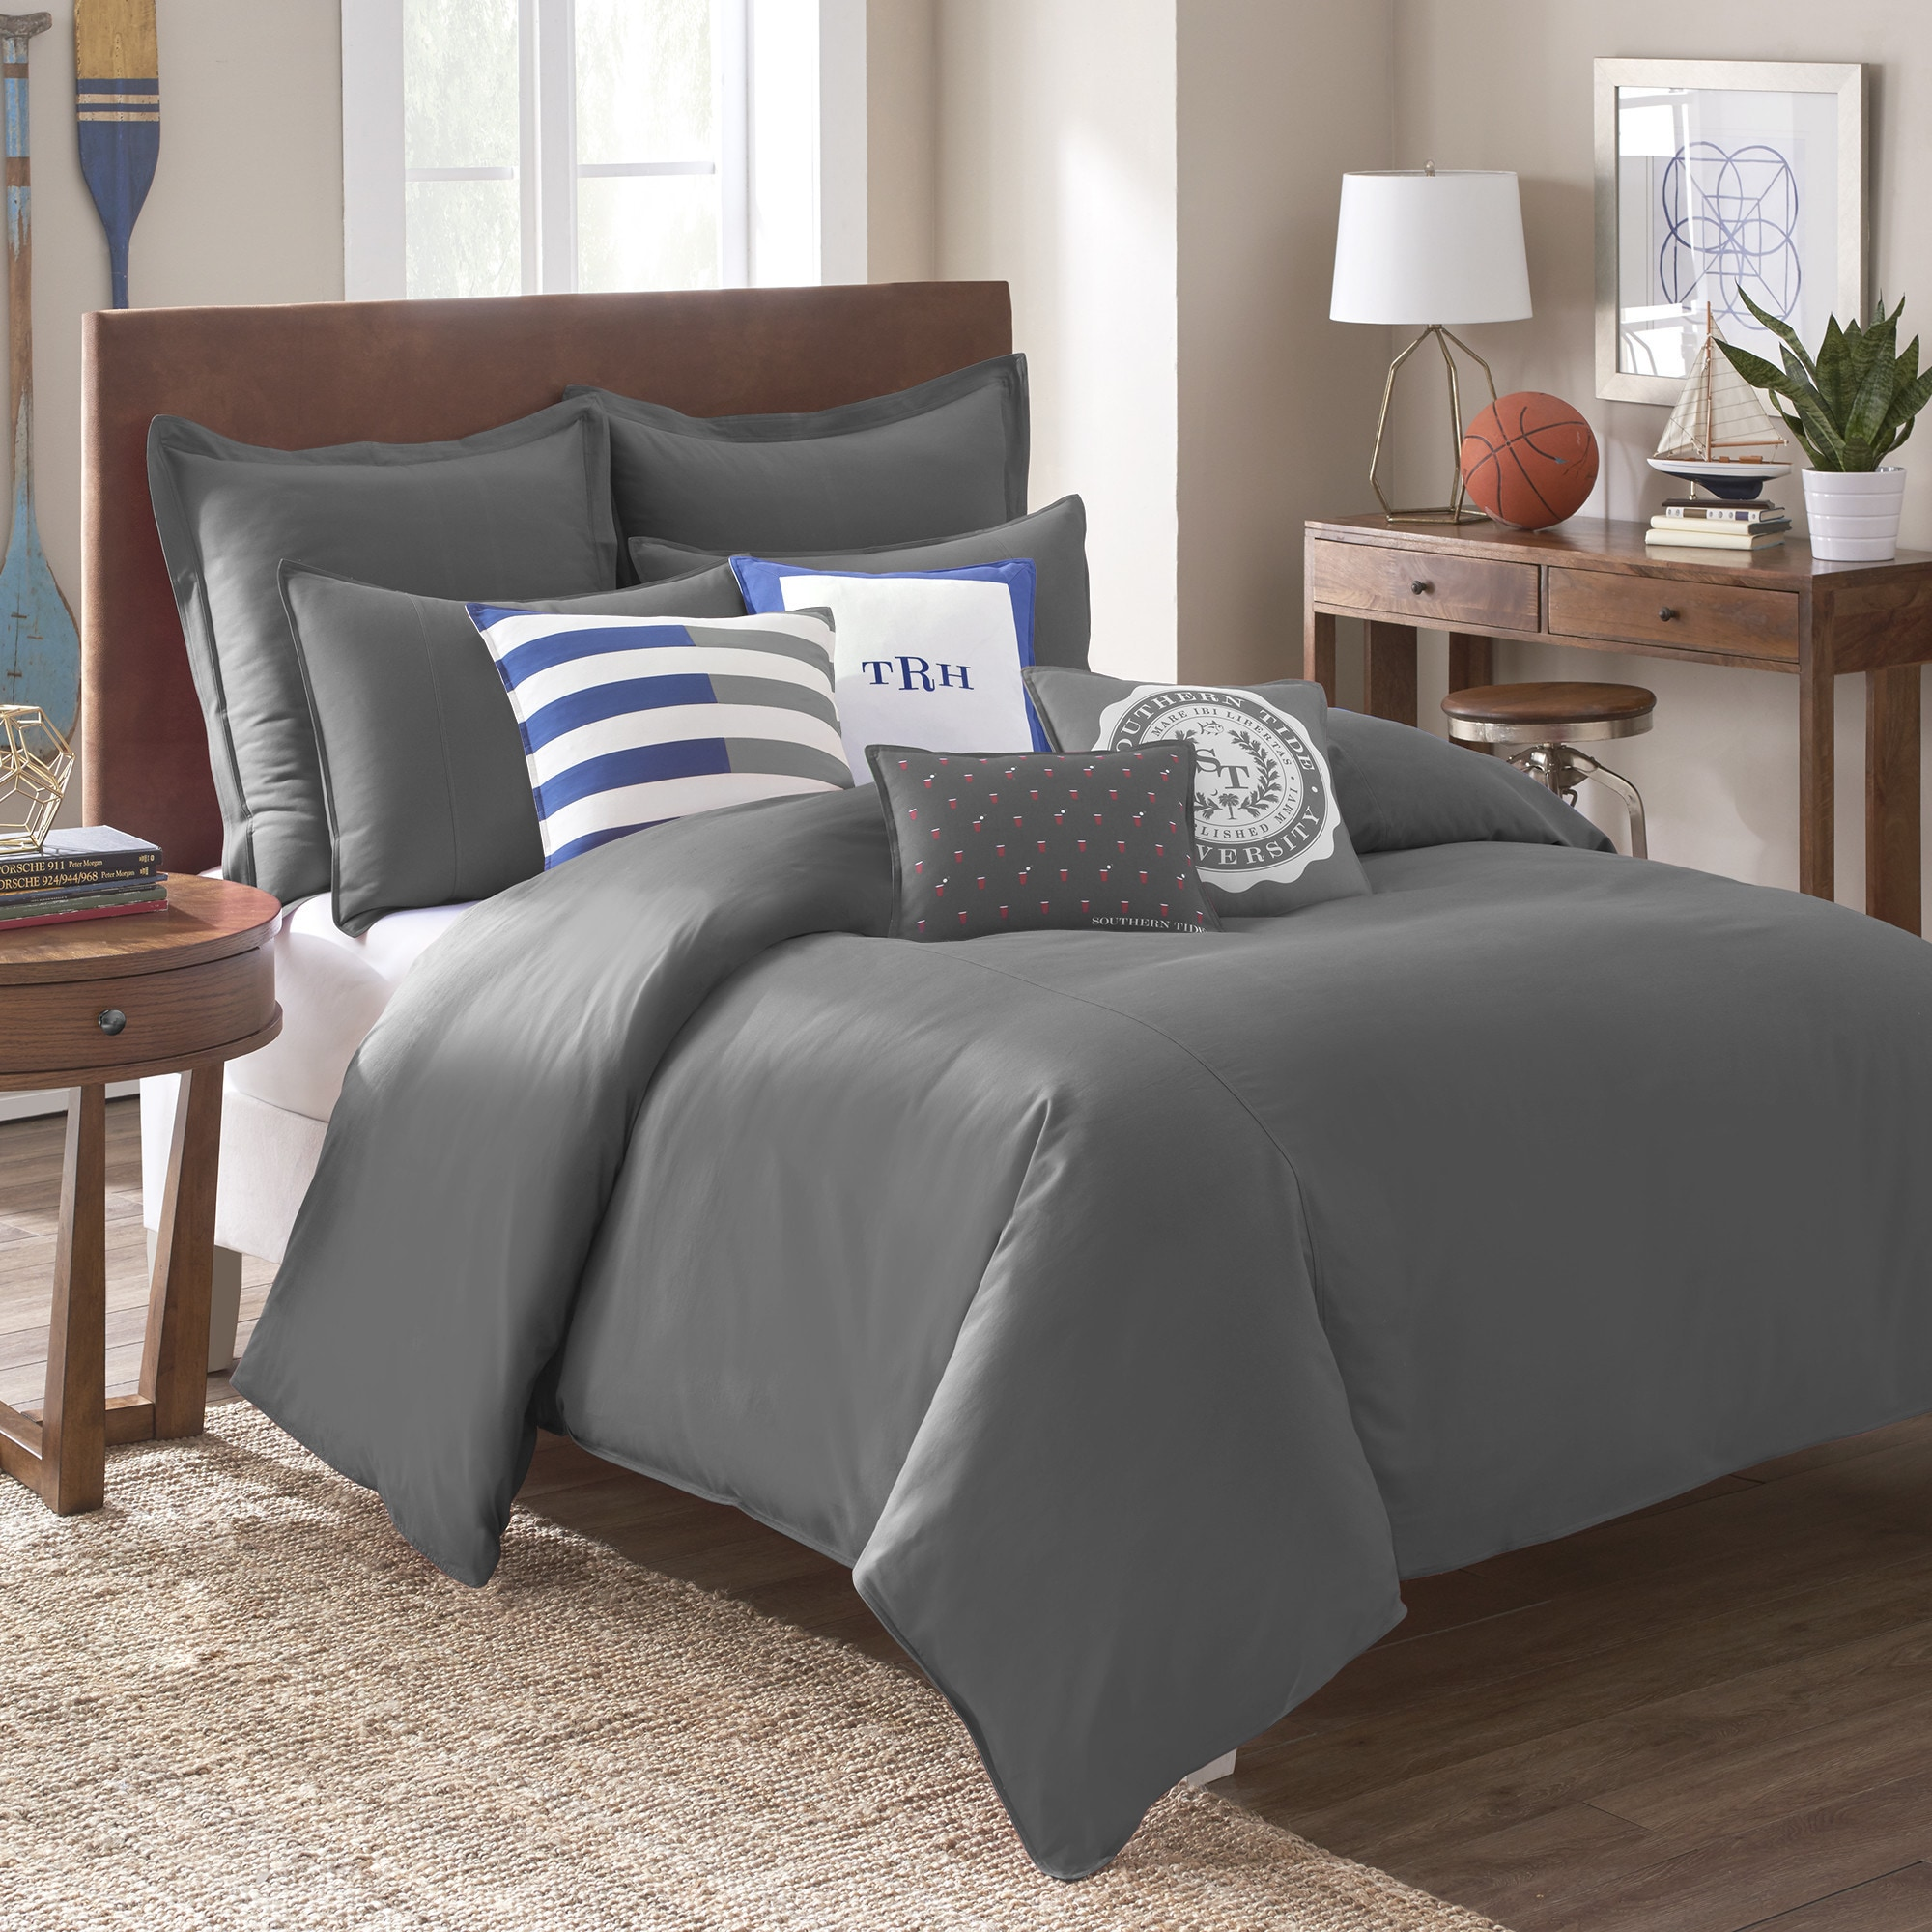 comforter duvet piece comforters tide set purple north rosemary home bedroom ideas sets archives cover southern